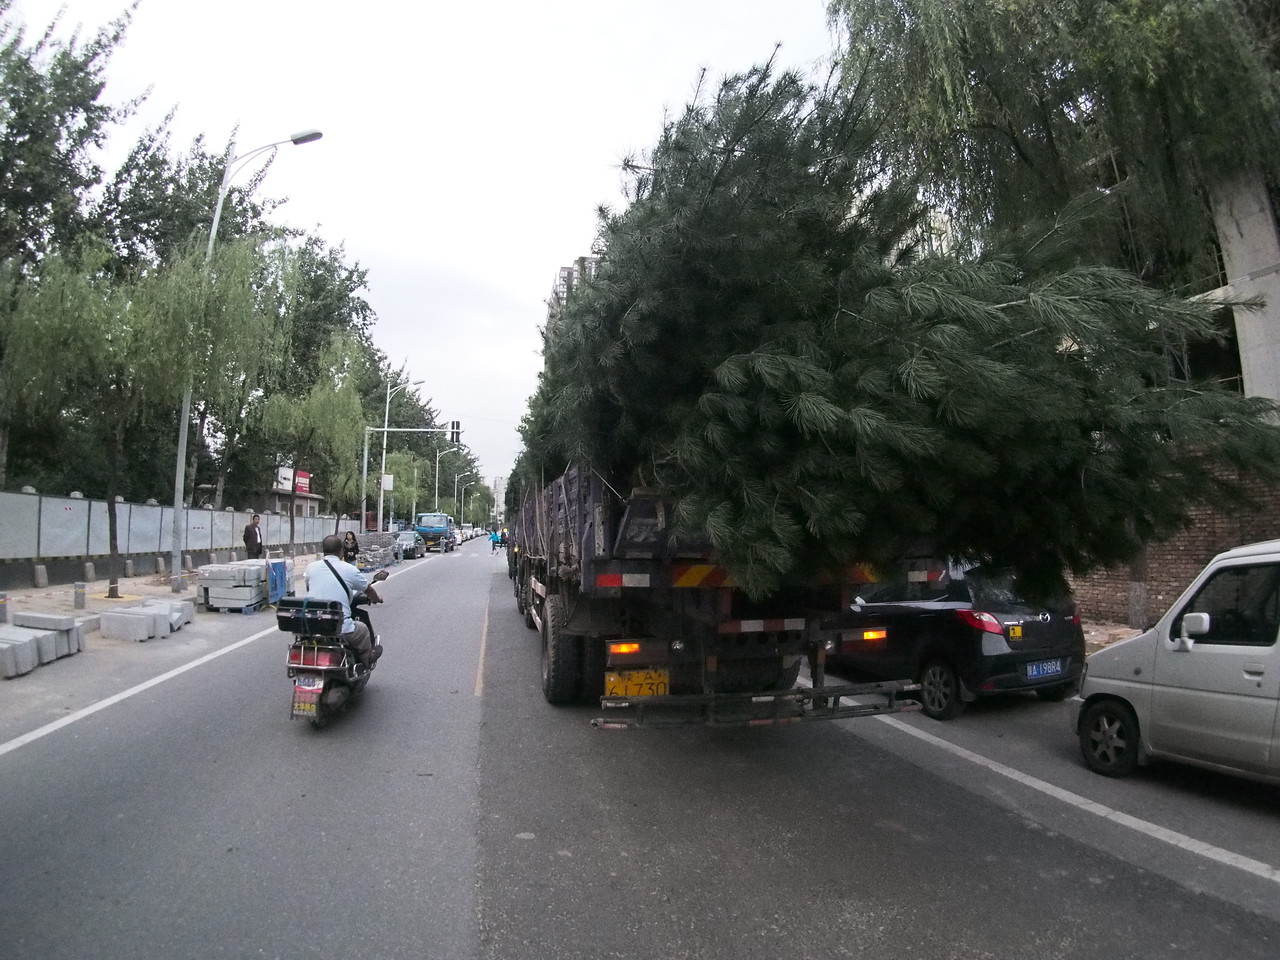 20150913_0655_1776 Just the typical 7 a.m. Sunday morning traffic in Xi'an